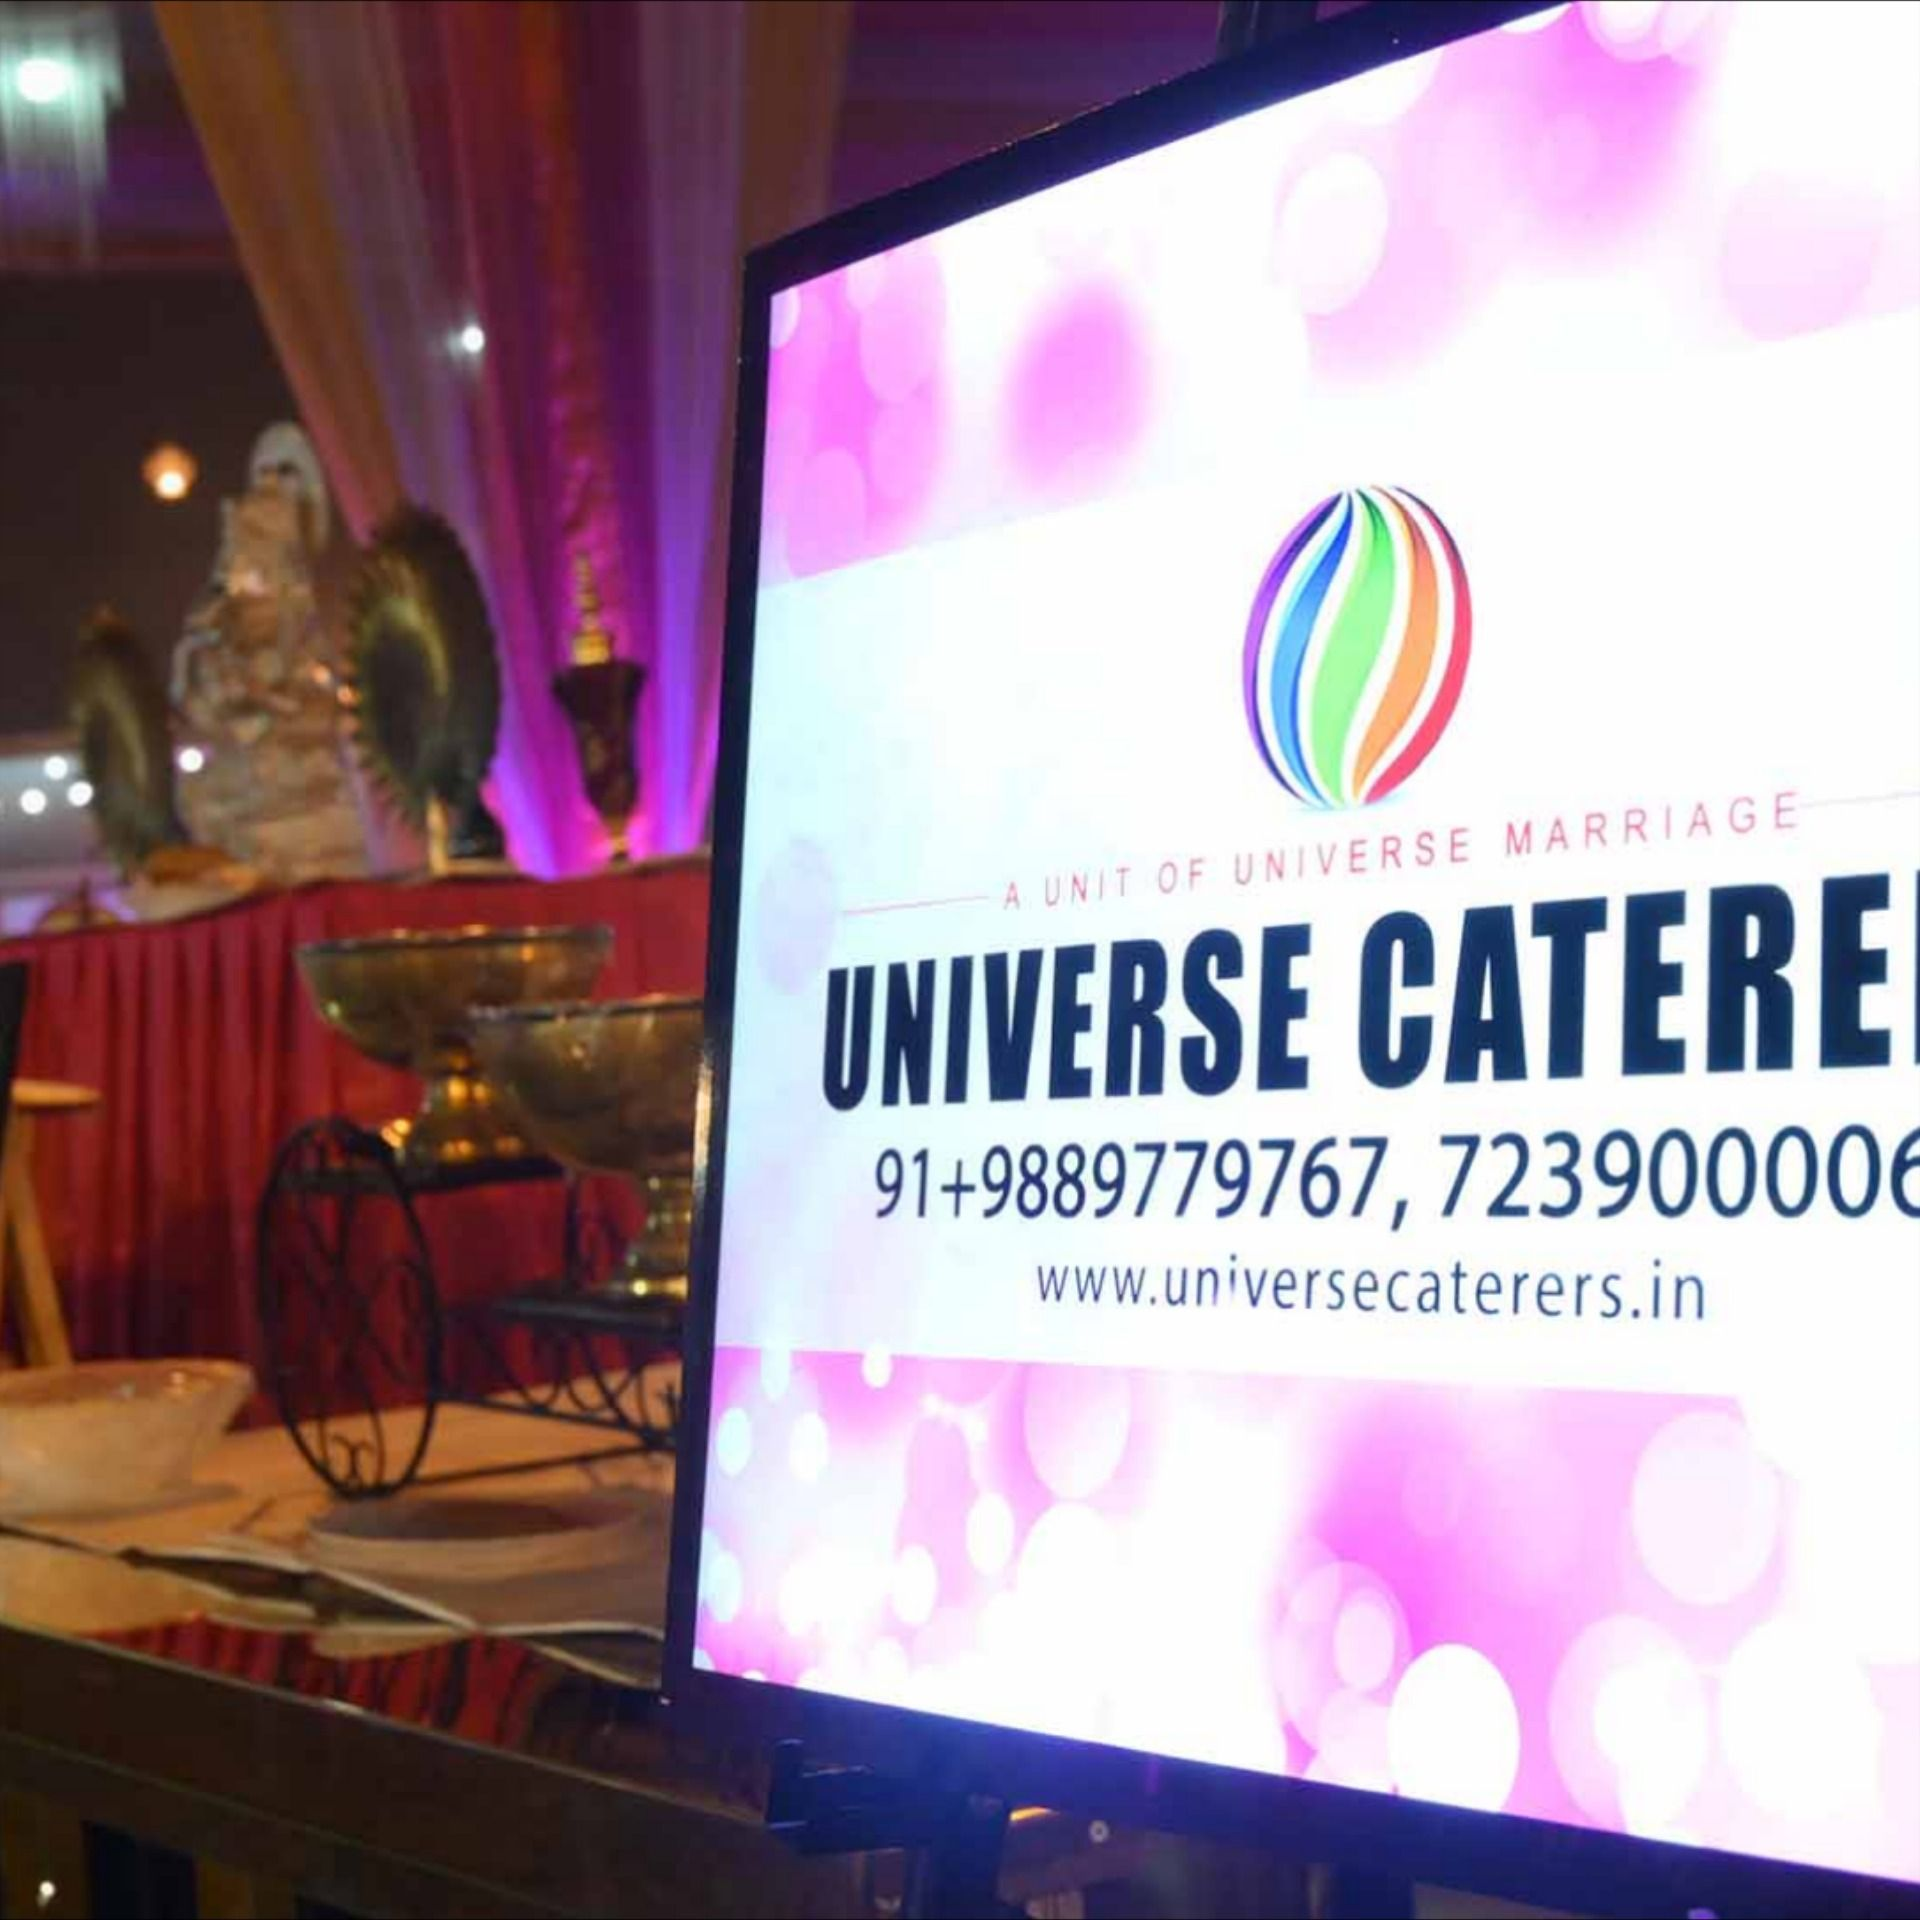 Best Veg Caterers in Varanasi India